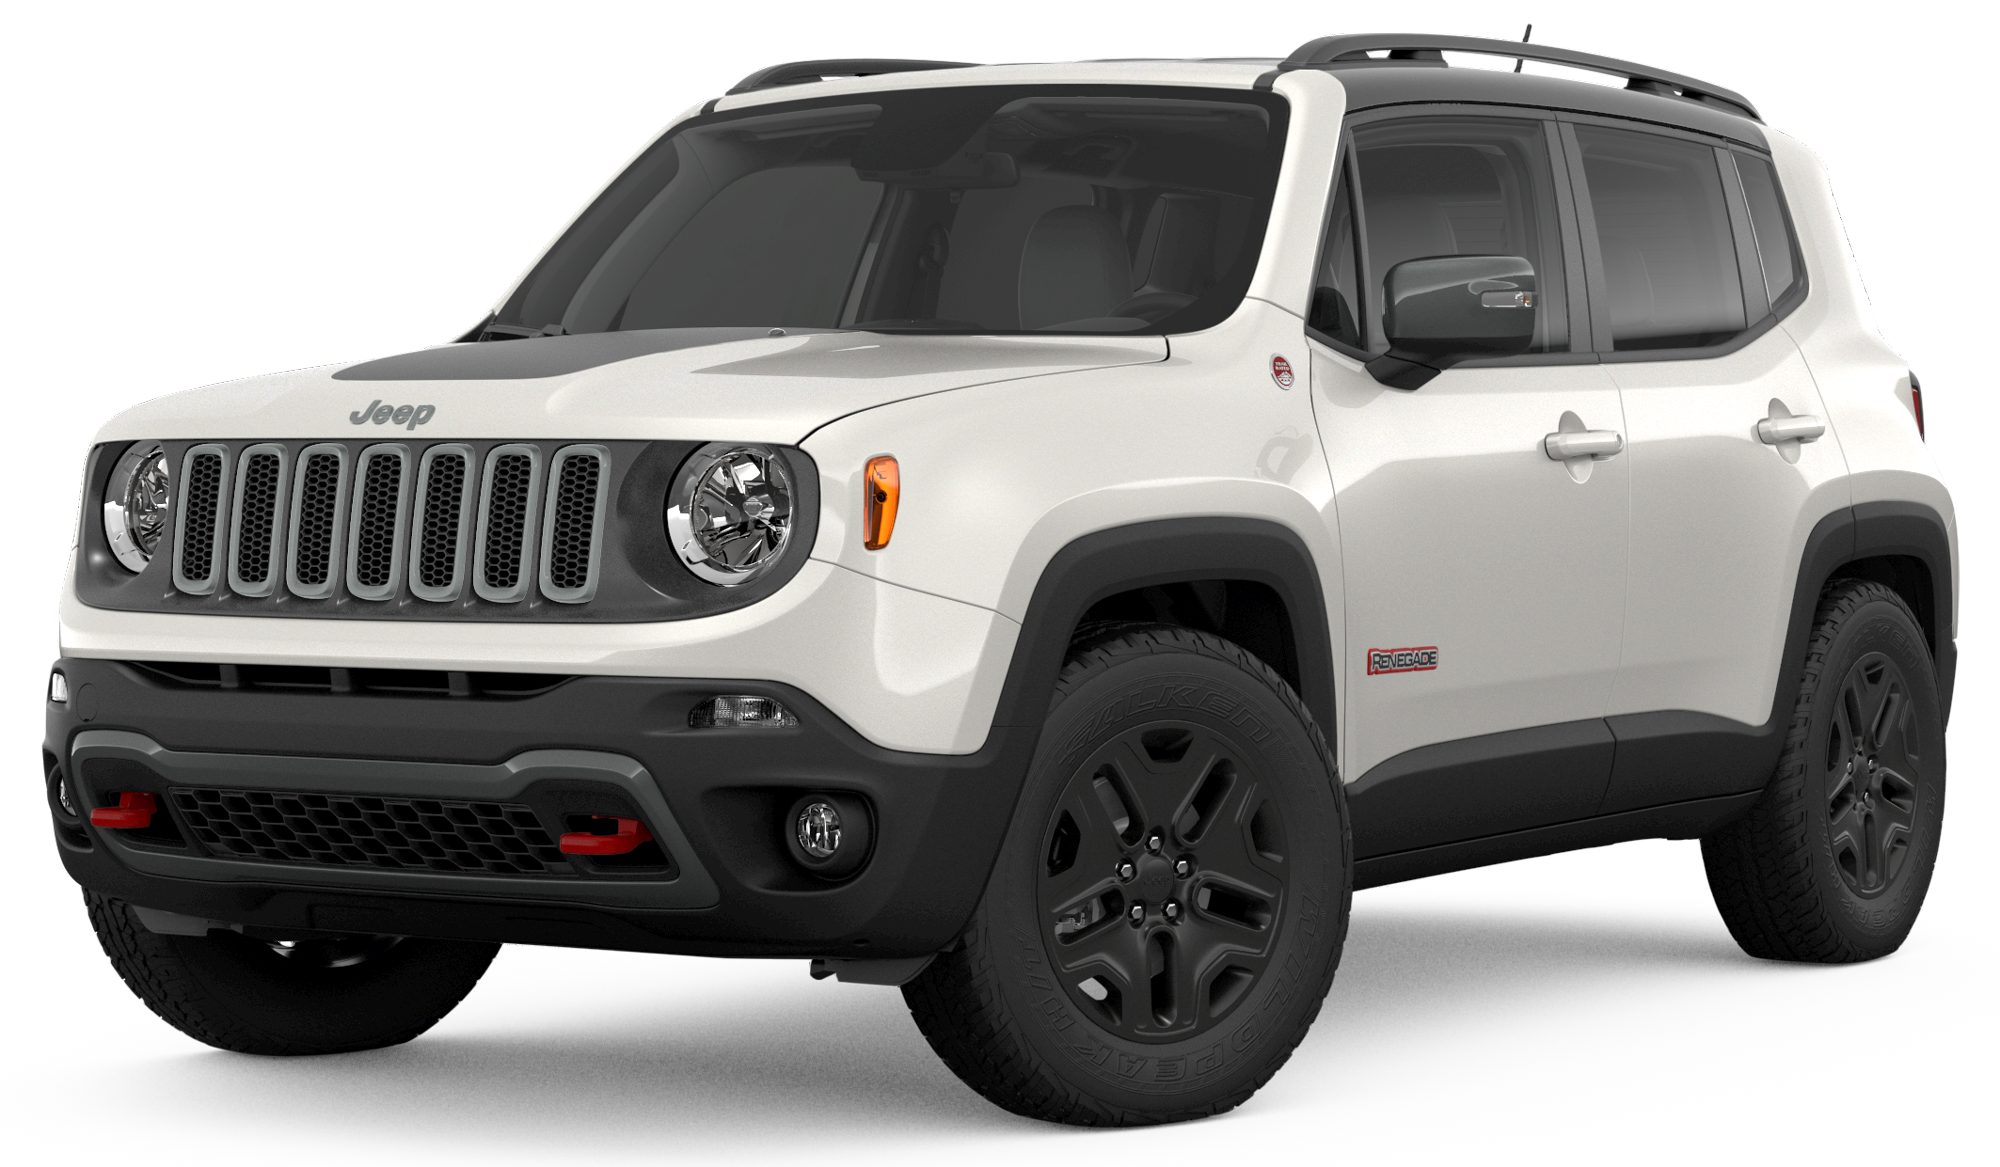 Review & Compare the 2019 Jeep Renegade at Larry H. Miller